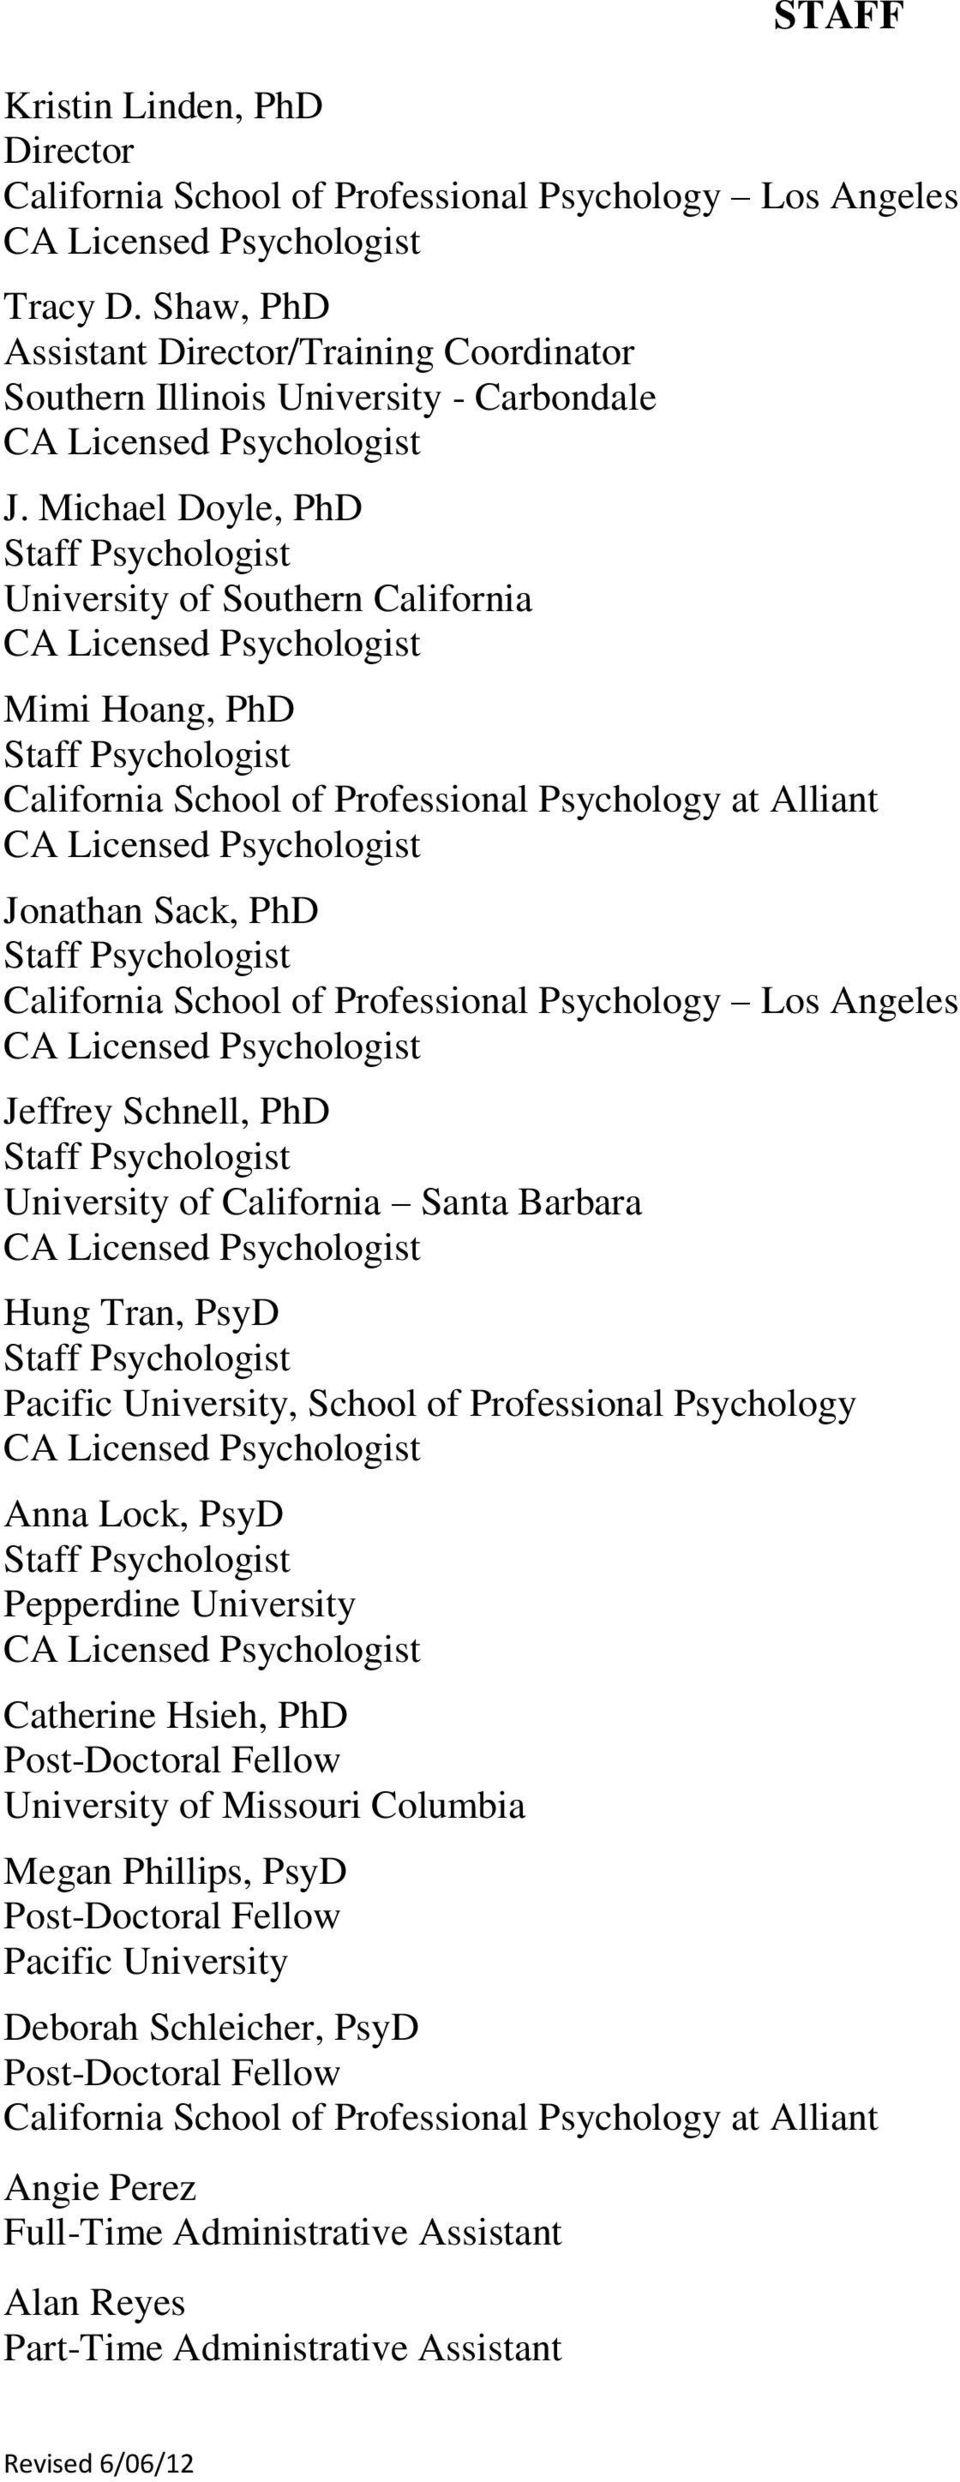 Angeles Jeffrey Schnell, PhD University of California Santa Barbara Hung Tran, PsyD Pacific University, School of Professional Psychology Anna Lock, PsyD Pepperdine University Catherine Hsieh, PhD